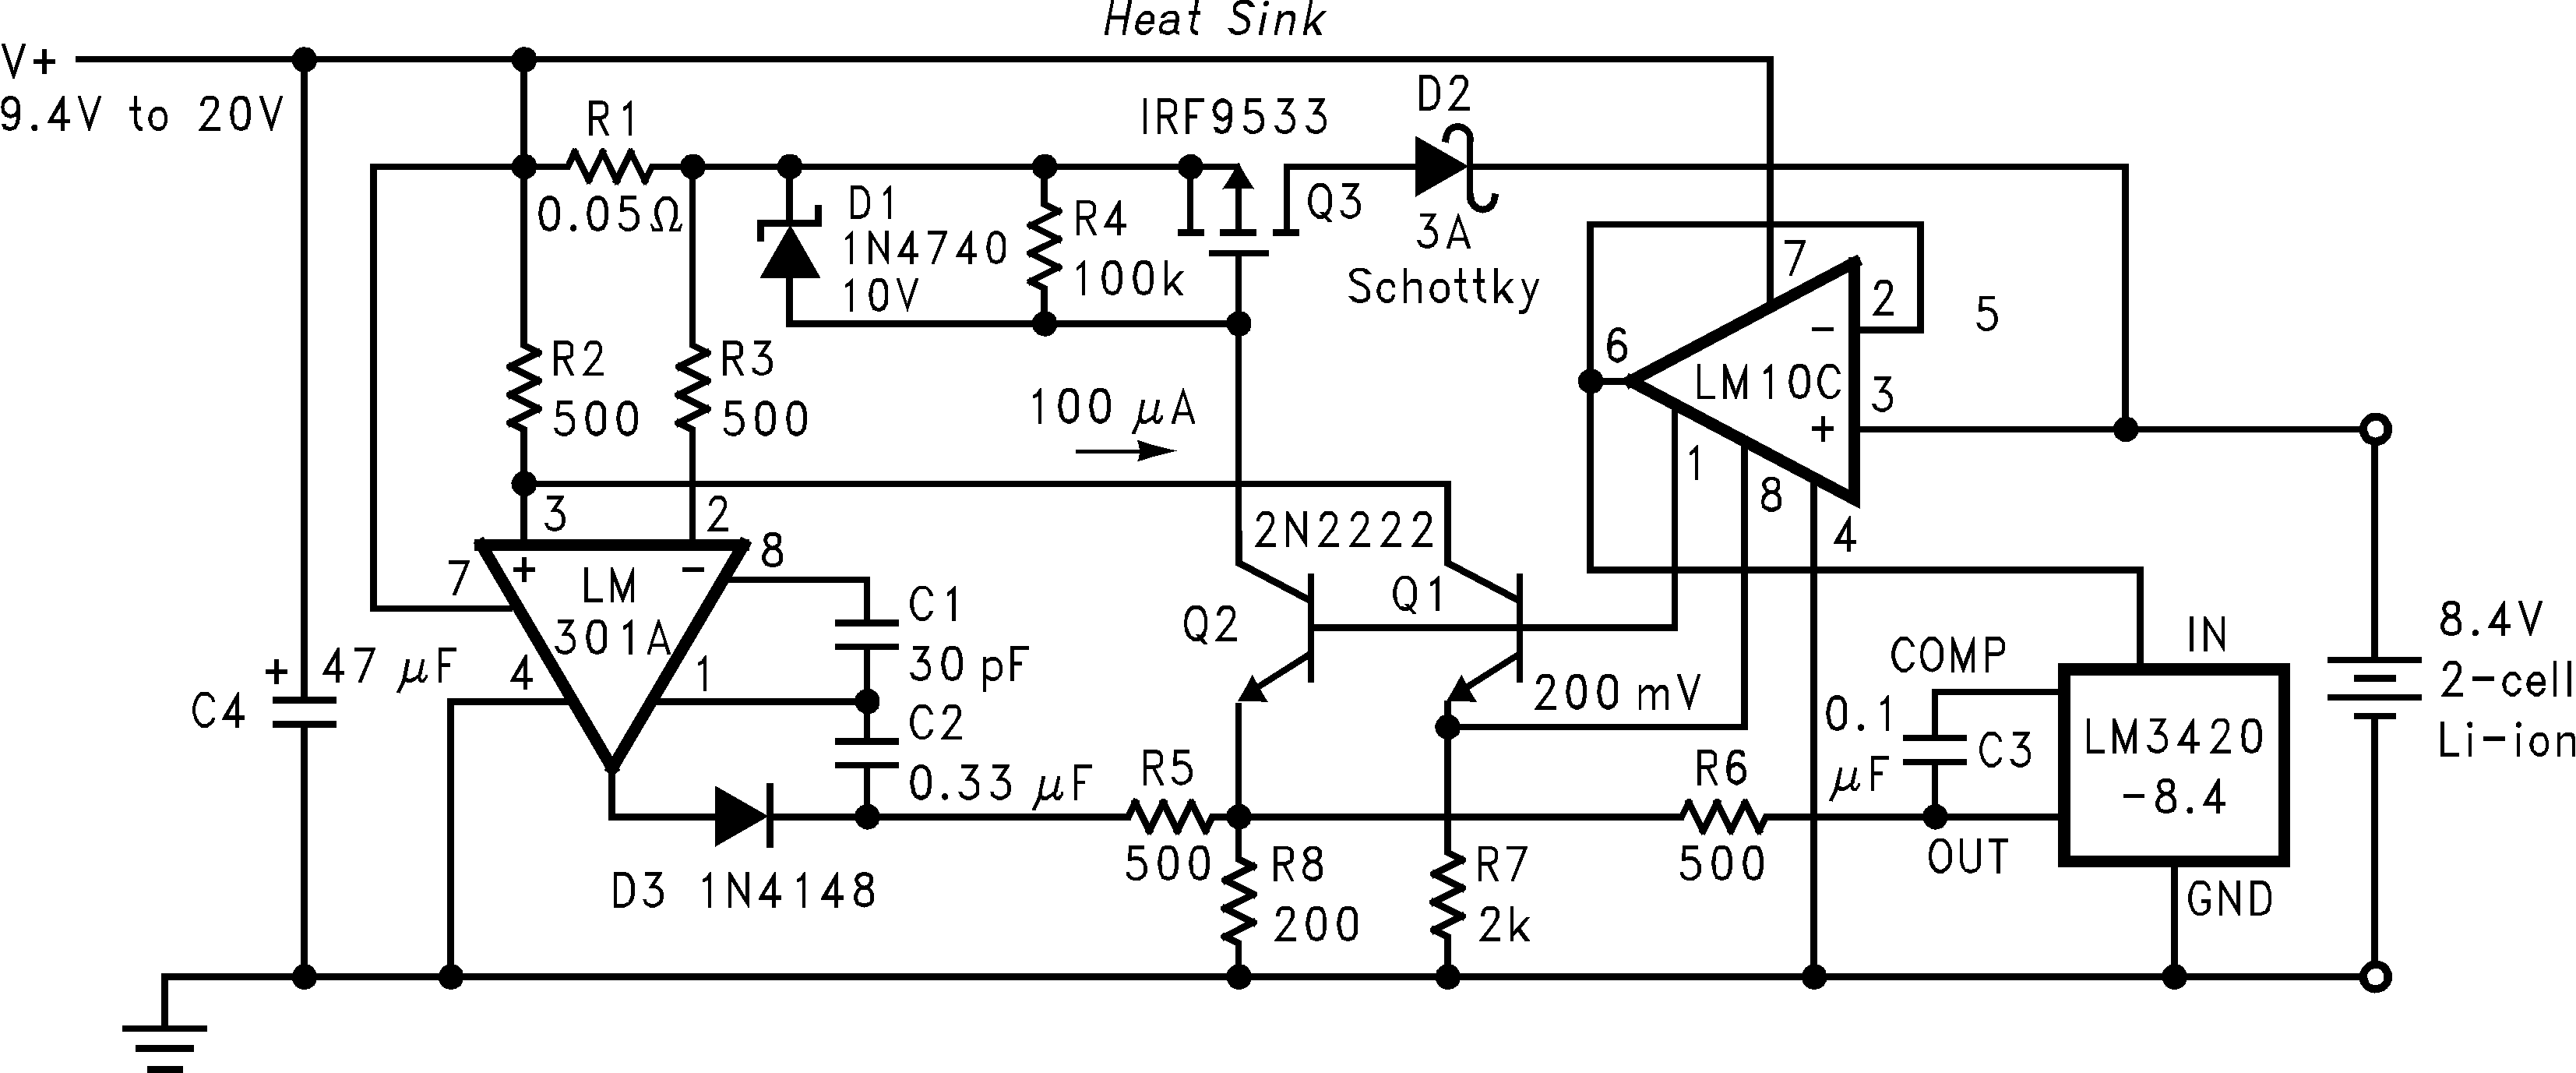 Lm3420 Basic Nicad Battery Charger Using A Single Medium Power Transistor Low Dropout Constant Current Voltage 2 Cell